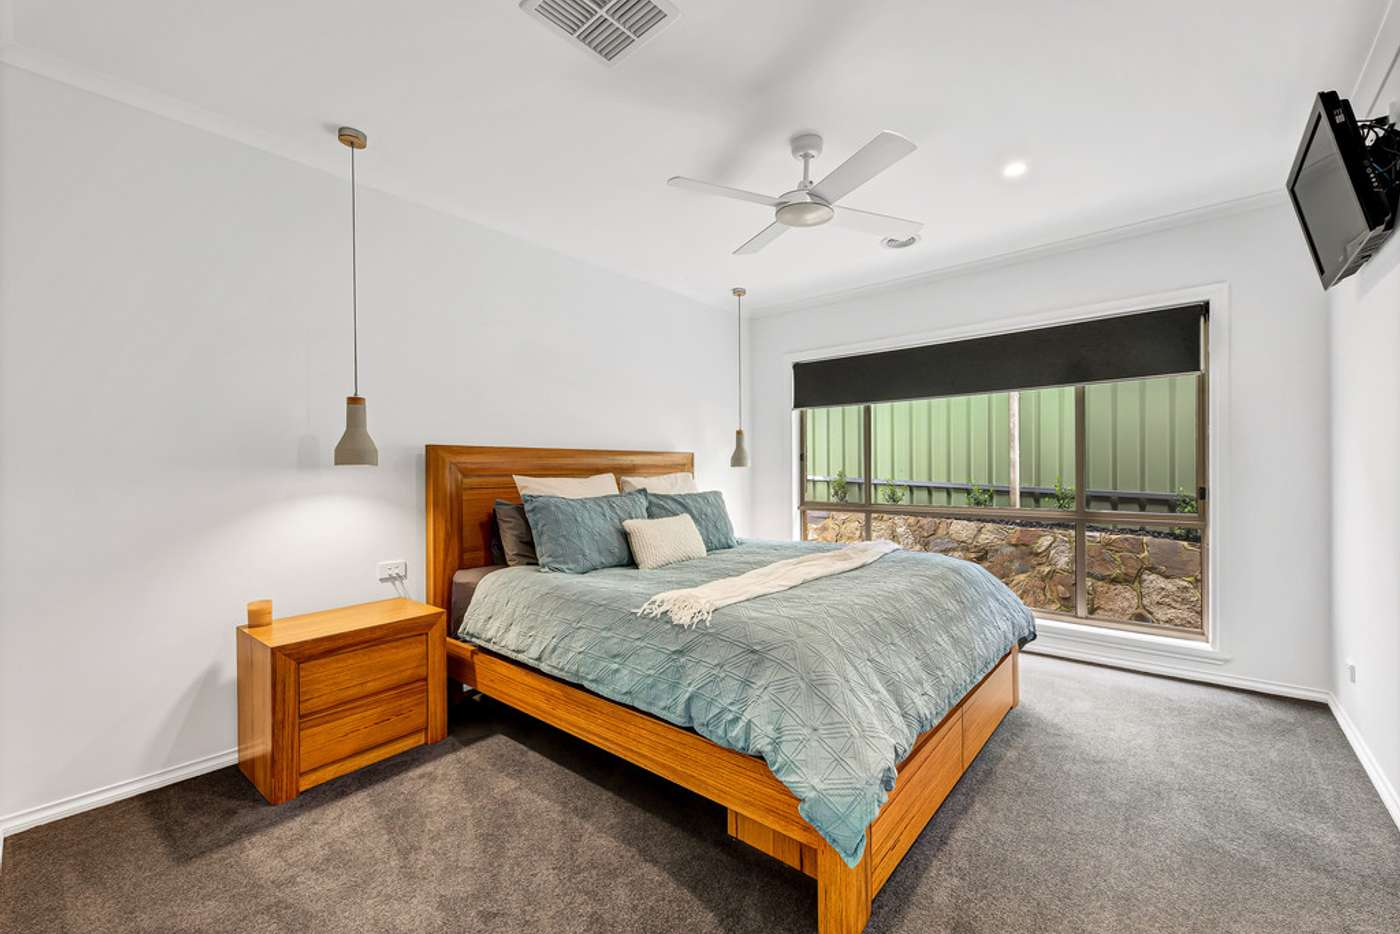 Fifth view of Homely house listing, 2 Fraser Court, Wodonga VIC 3690